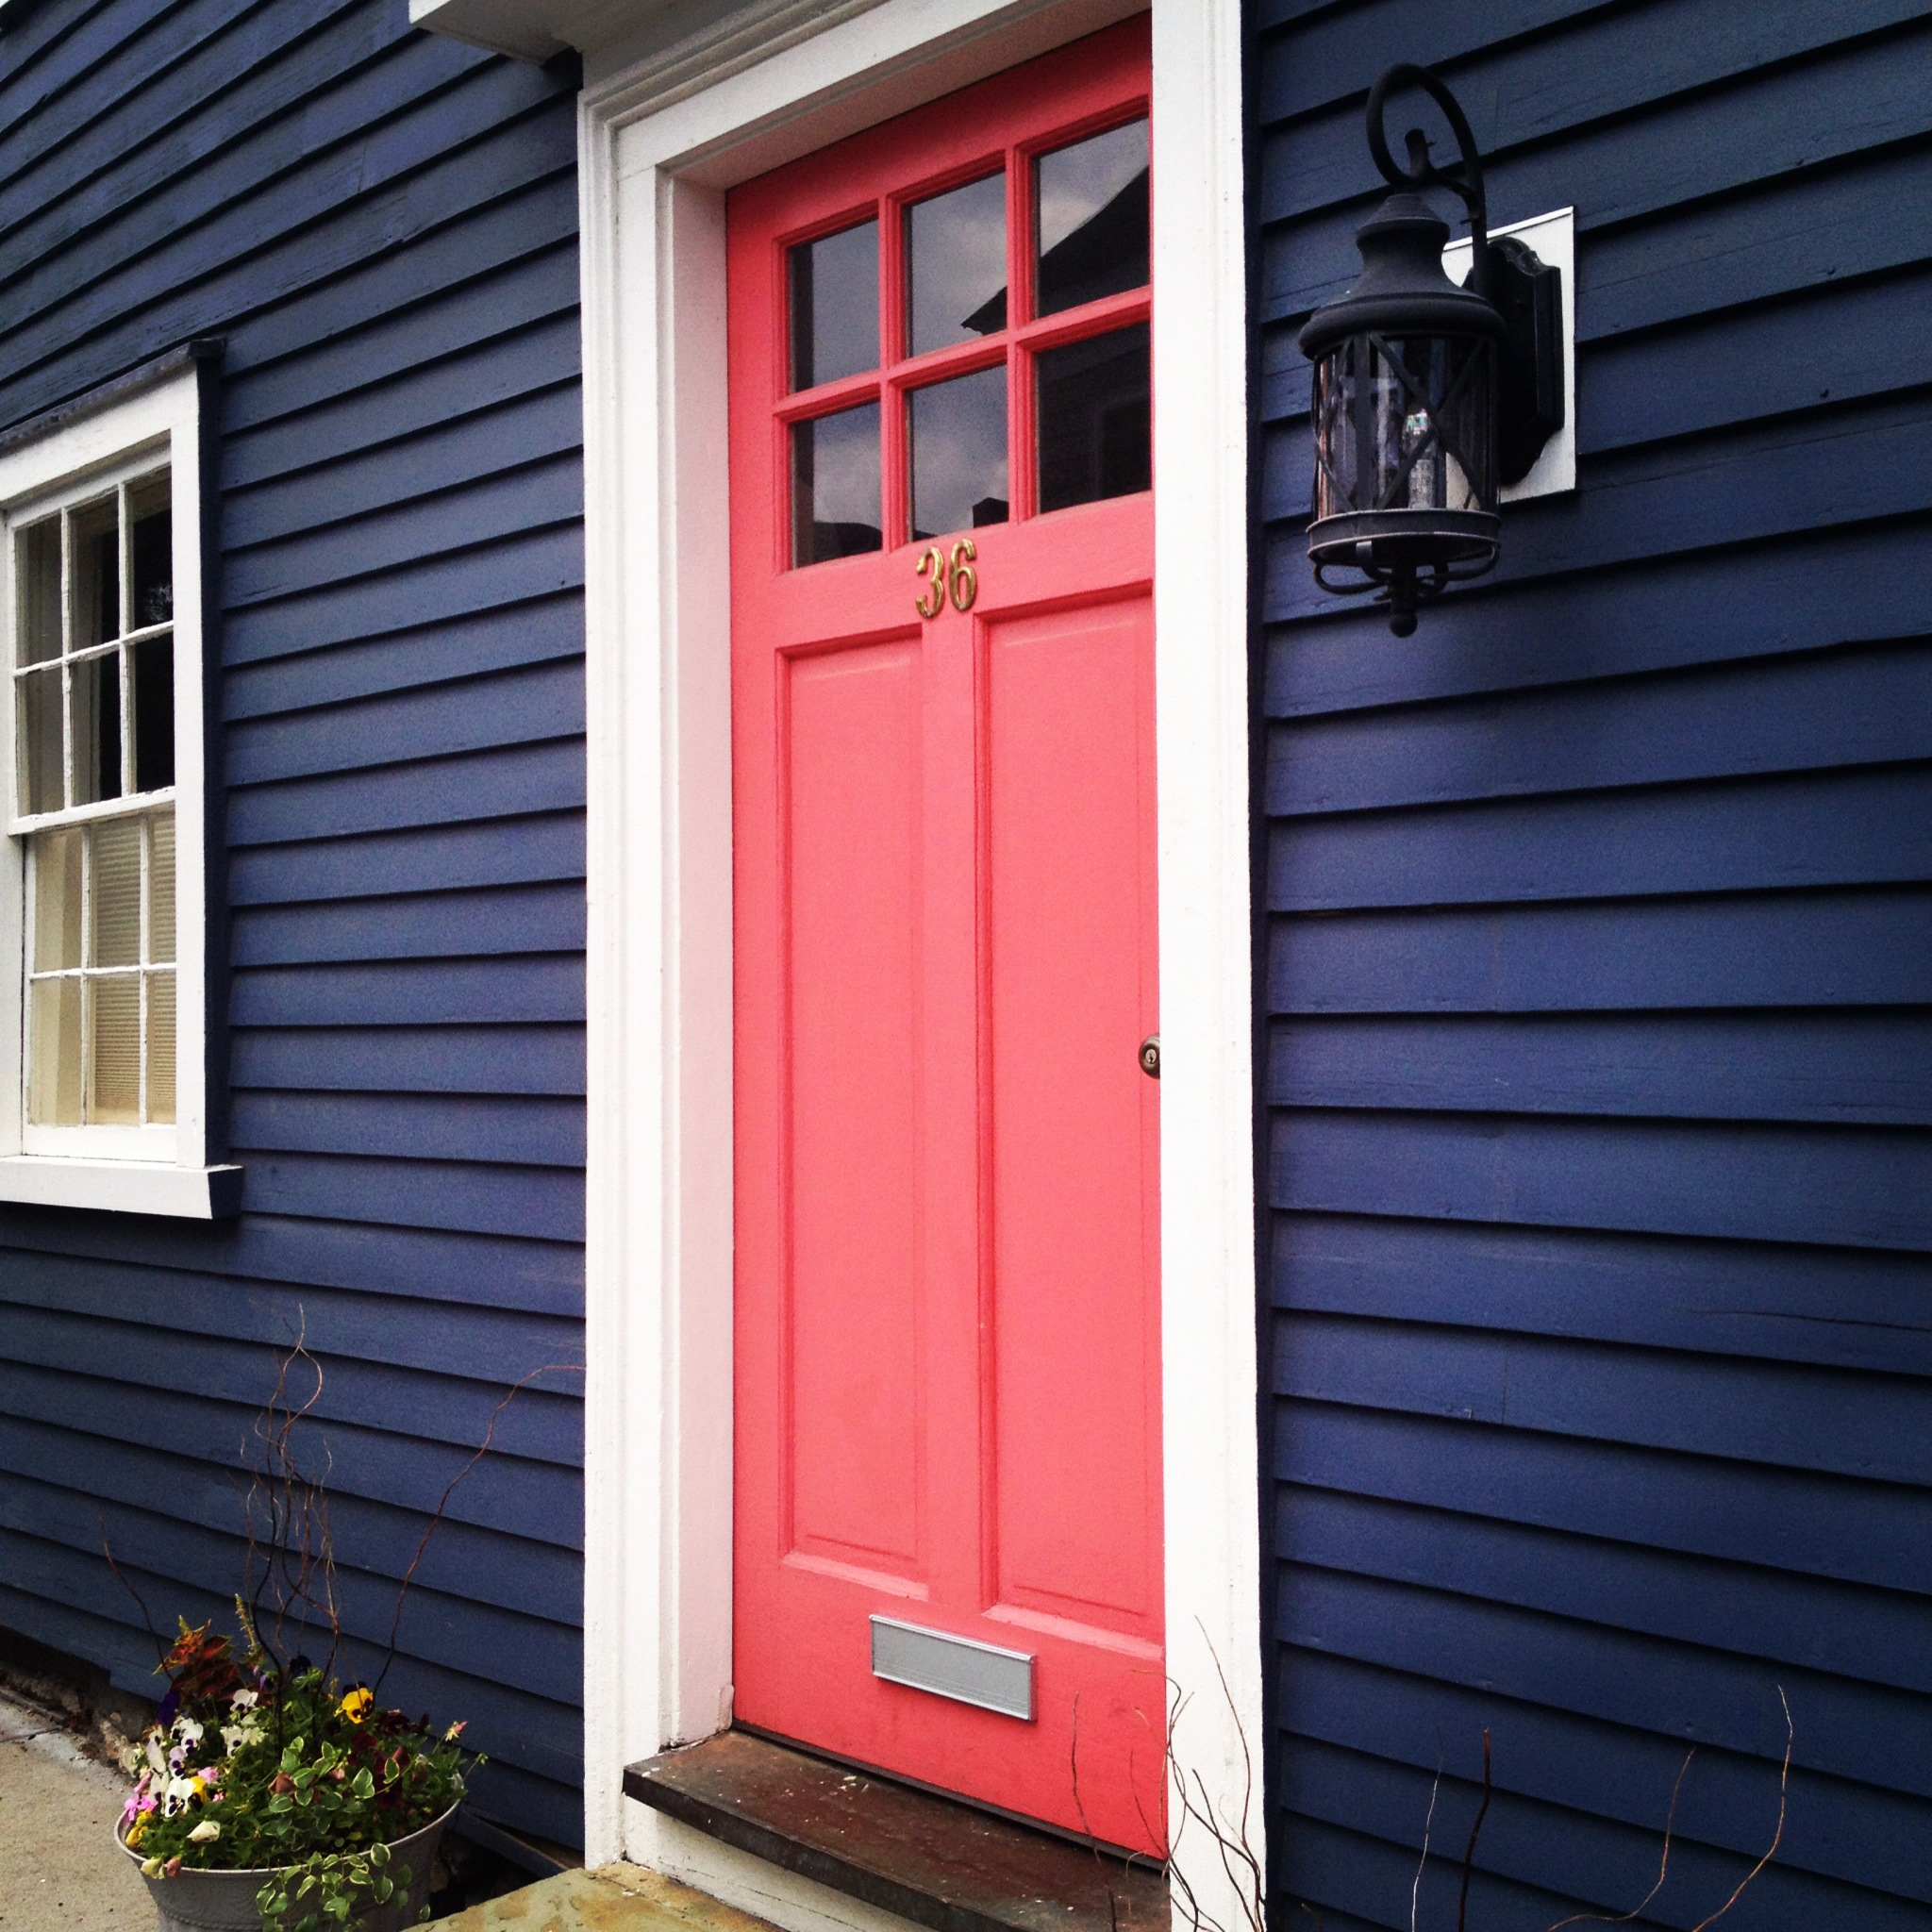 The contrast between the red door and the blue exterior